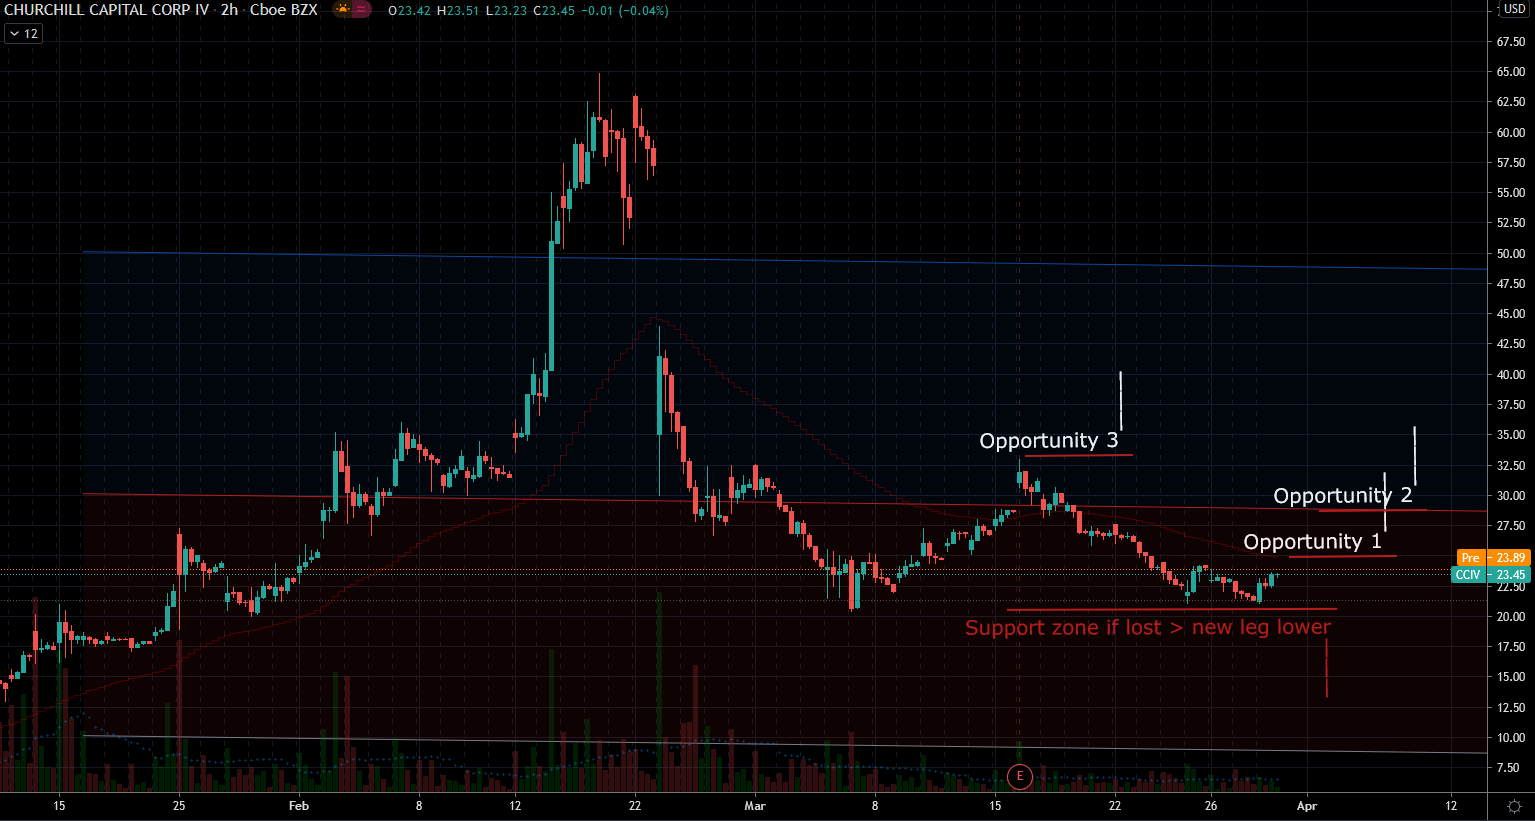 Churchill Capital (CCIV) Stock Chart Showing Potential Base